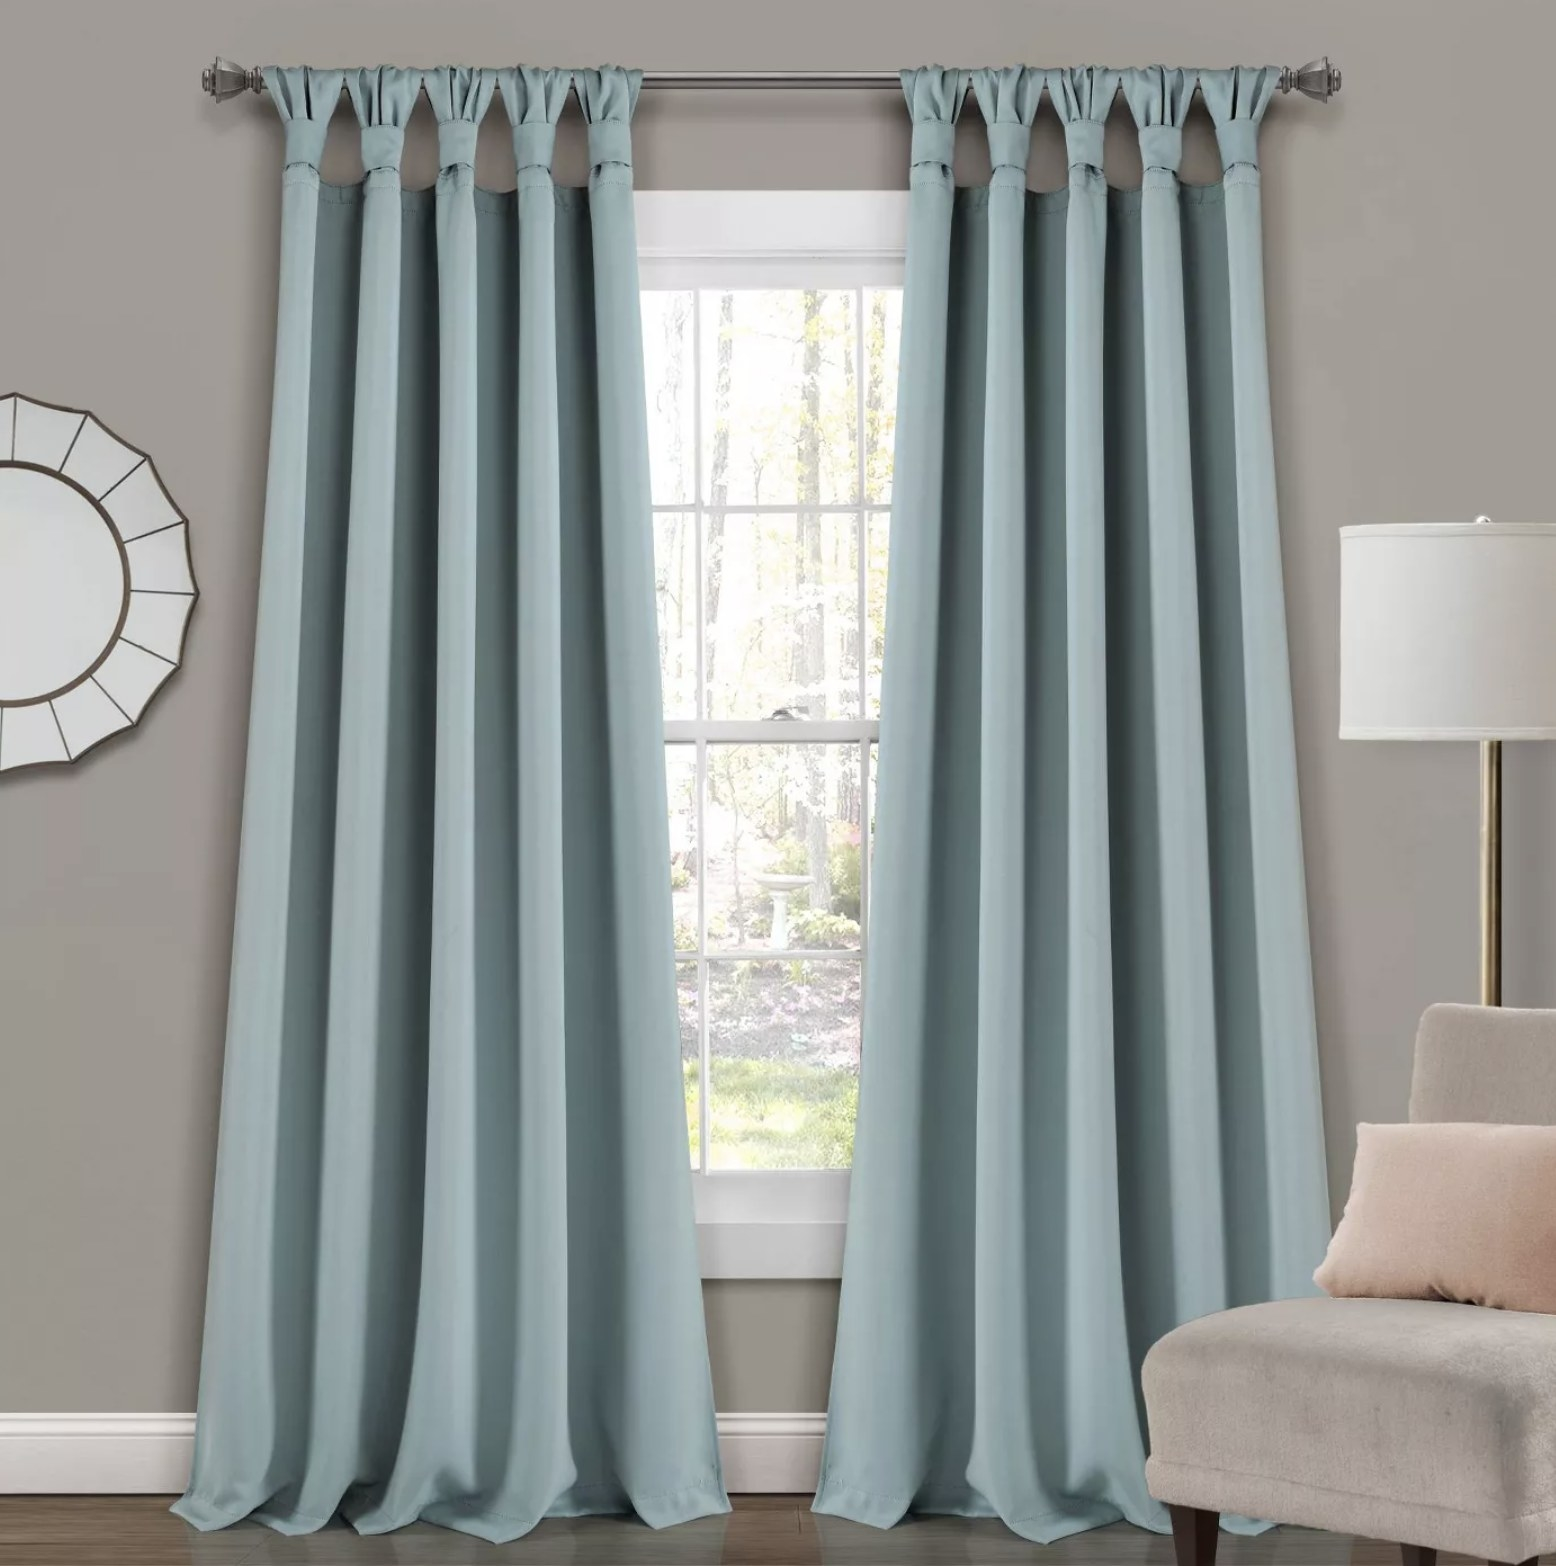 A set of light blue blackout curtains over a window